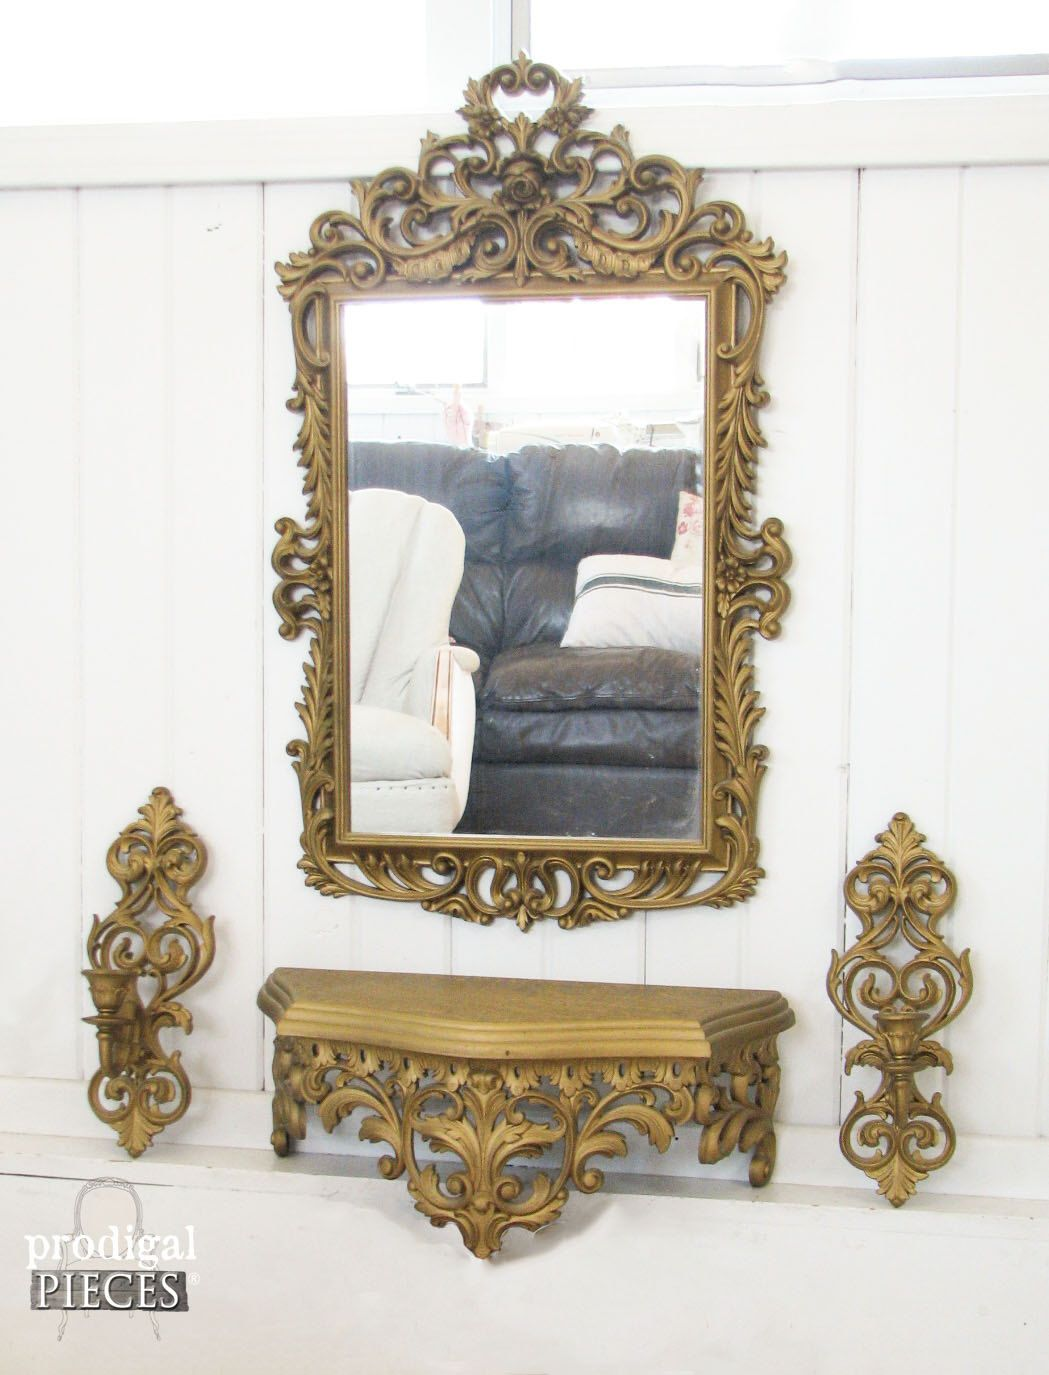 Antique Framed Mirror For Sale 32 X23 Distressed White Ornate Baroque Framed Mirror Shabby Chic Nursery Antique Wall Mirror Framed Mirrors Shabby Chic Mirror Frame Shabby Chic Mirror Framed Mirror Wall [ 2510 x 1959 Pixel ]